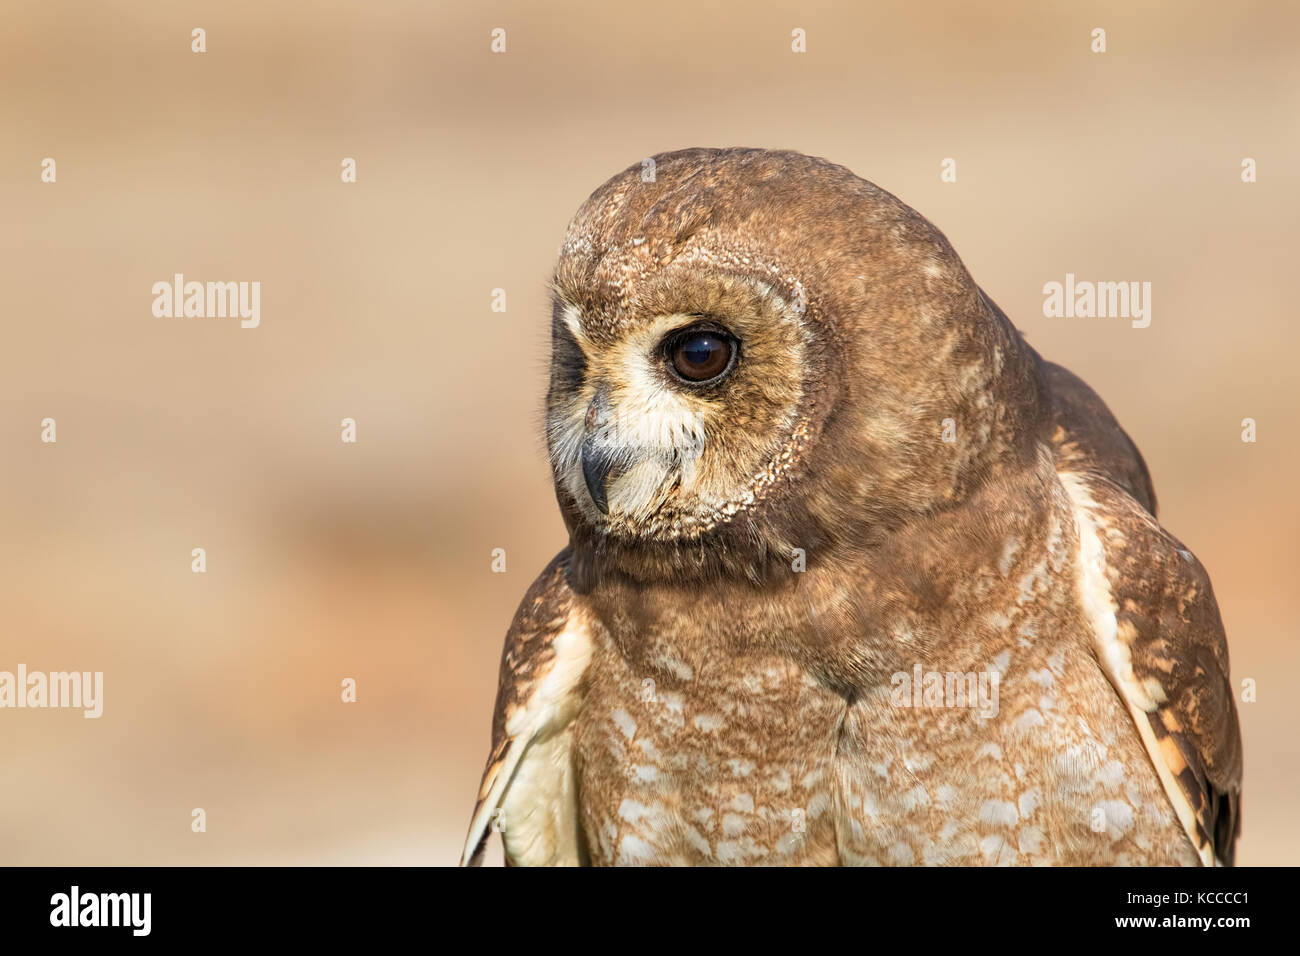 Head close up of an owl, South Africa Stock Photo